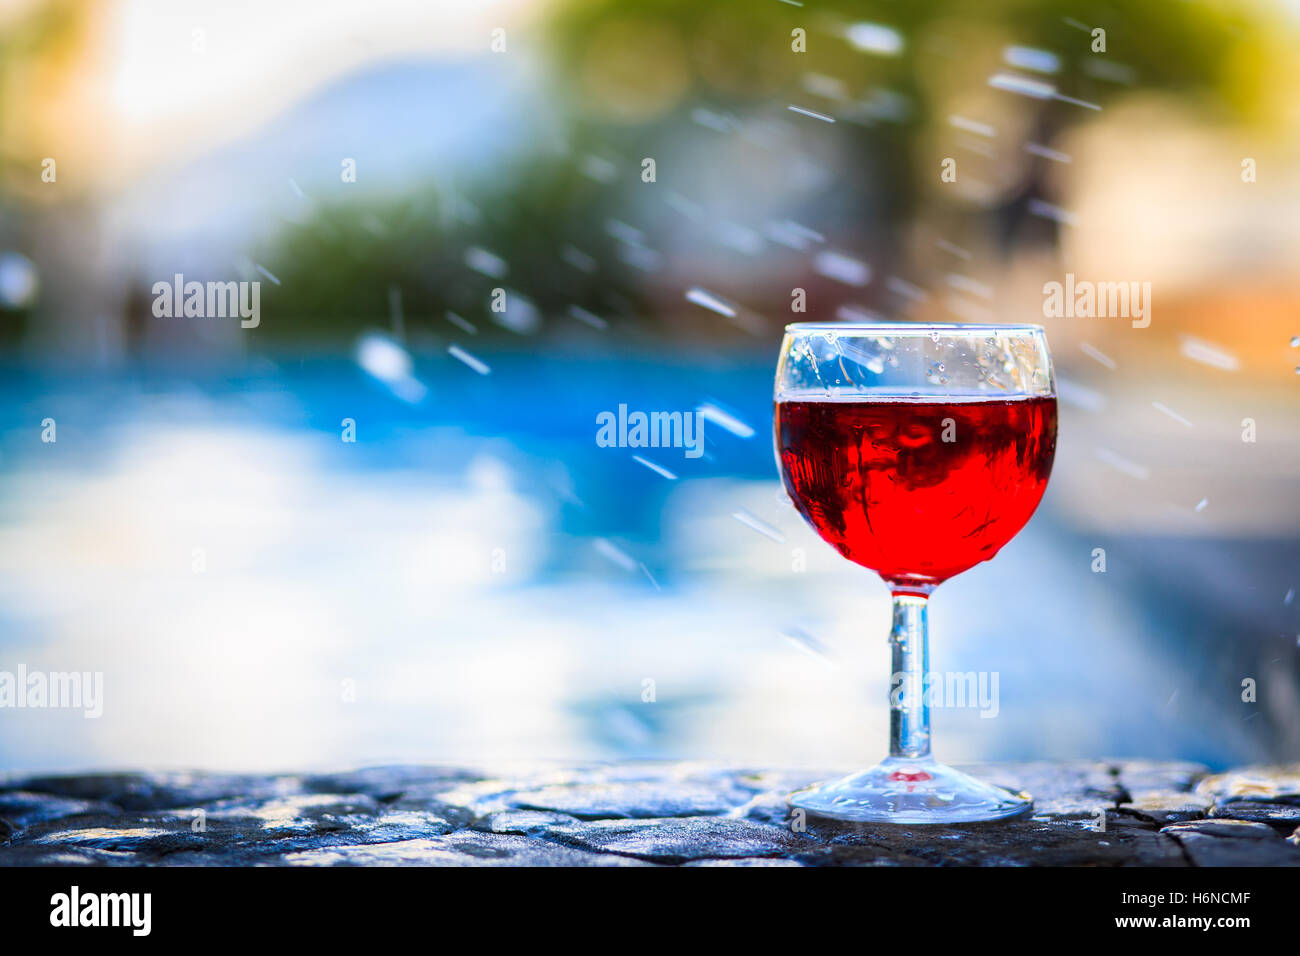 Glas Pool Glass Of Red Wine On The Edge Of The Swimming Pool Stock Photo